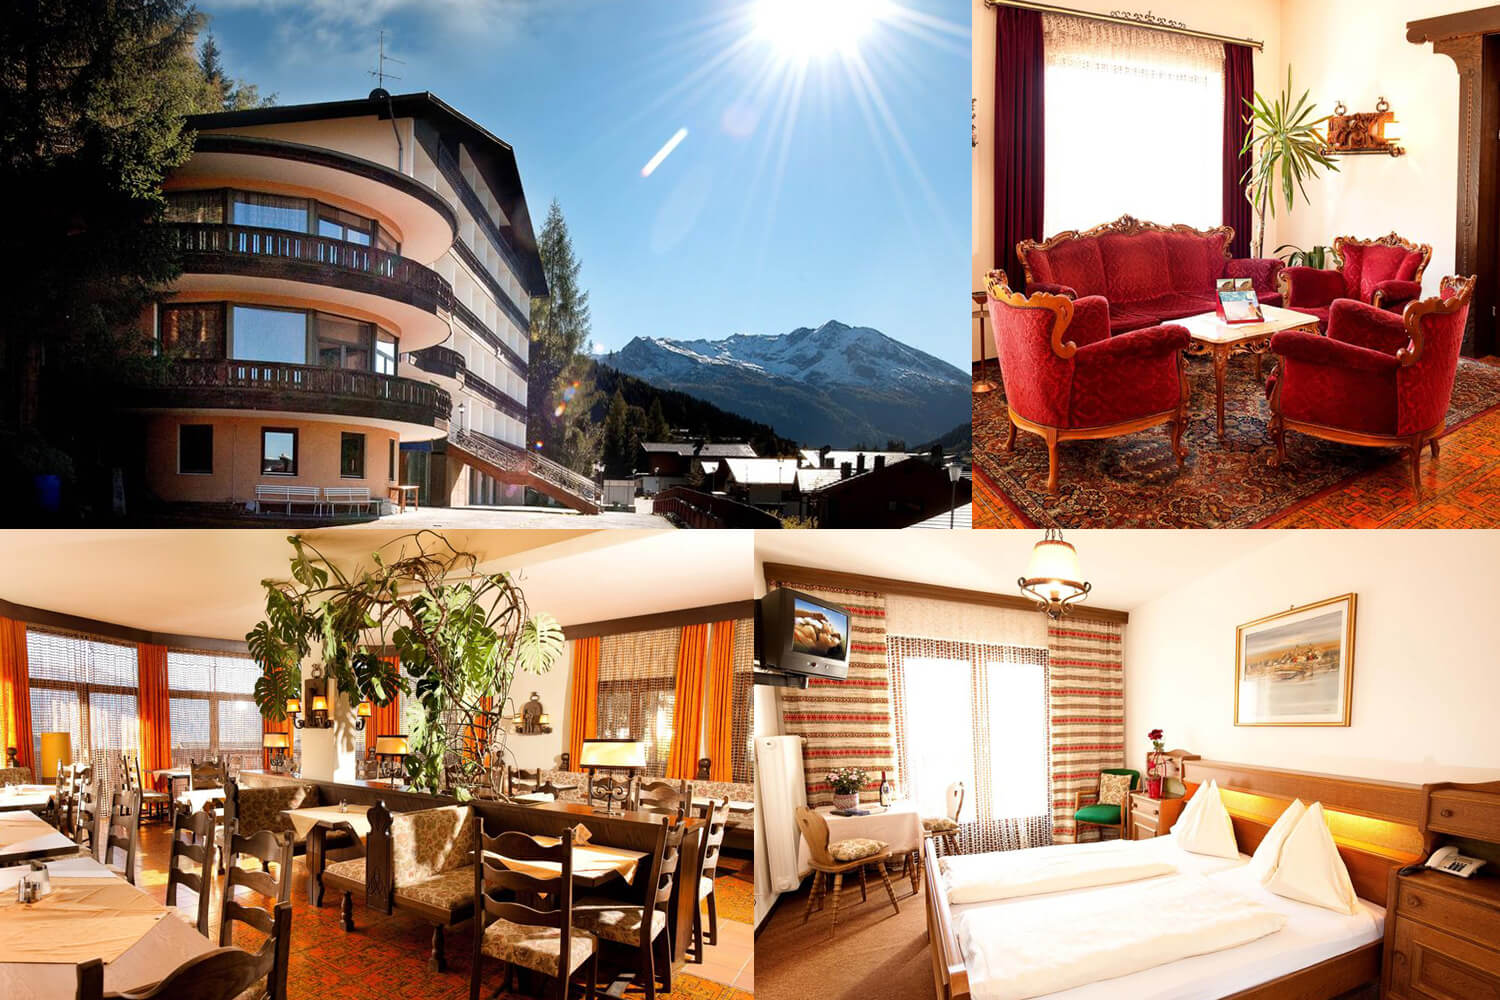 3 Tage Kurzurlaub Halbpension im Panoramahotel Pawlik in Bad Gastein - 30.03. - 27.04.2019